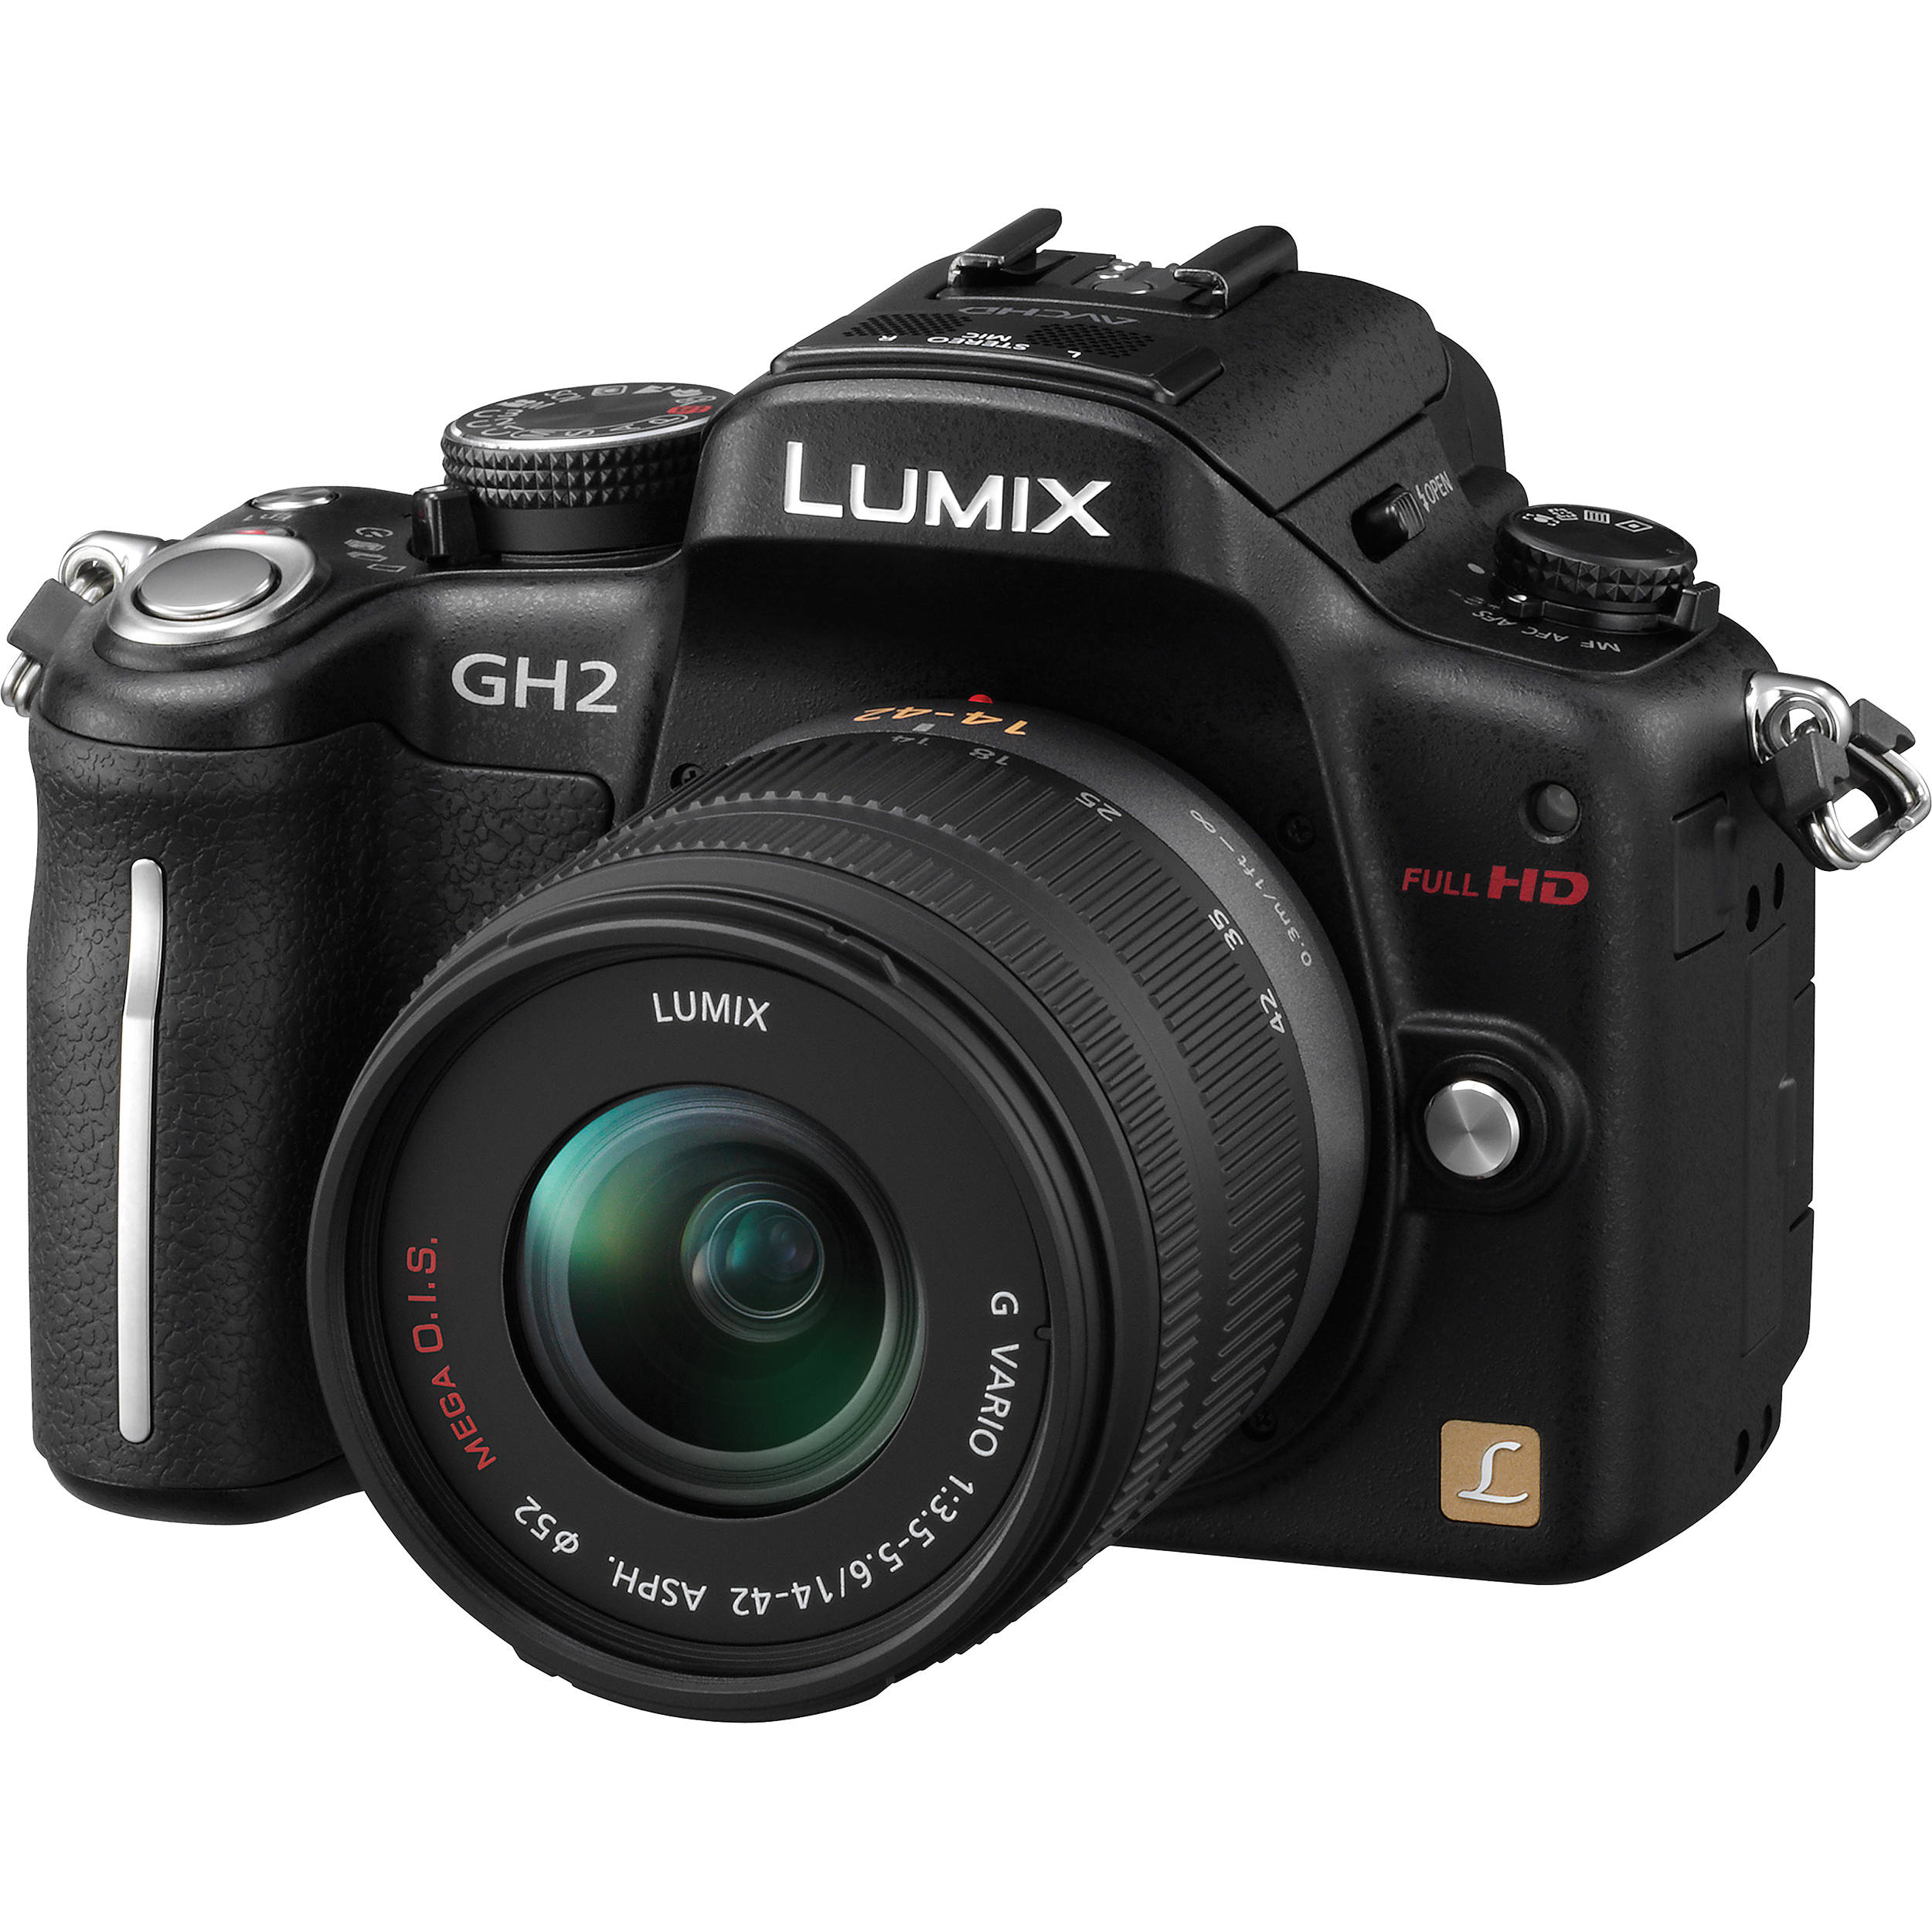 Used Panasonic Lumix DMC-GH2 Digital Camera W/14-42mm DMC ...: https://www.bhphotovideo.com/c/product/801455137-USE/panasonic_dmc_gh2kk_lumix_dmc_gh2_digital_camera.html